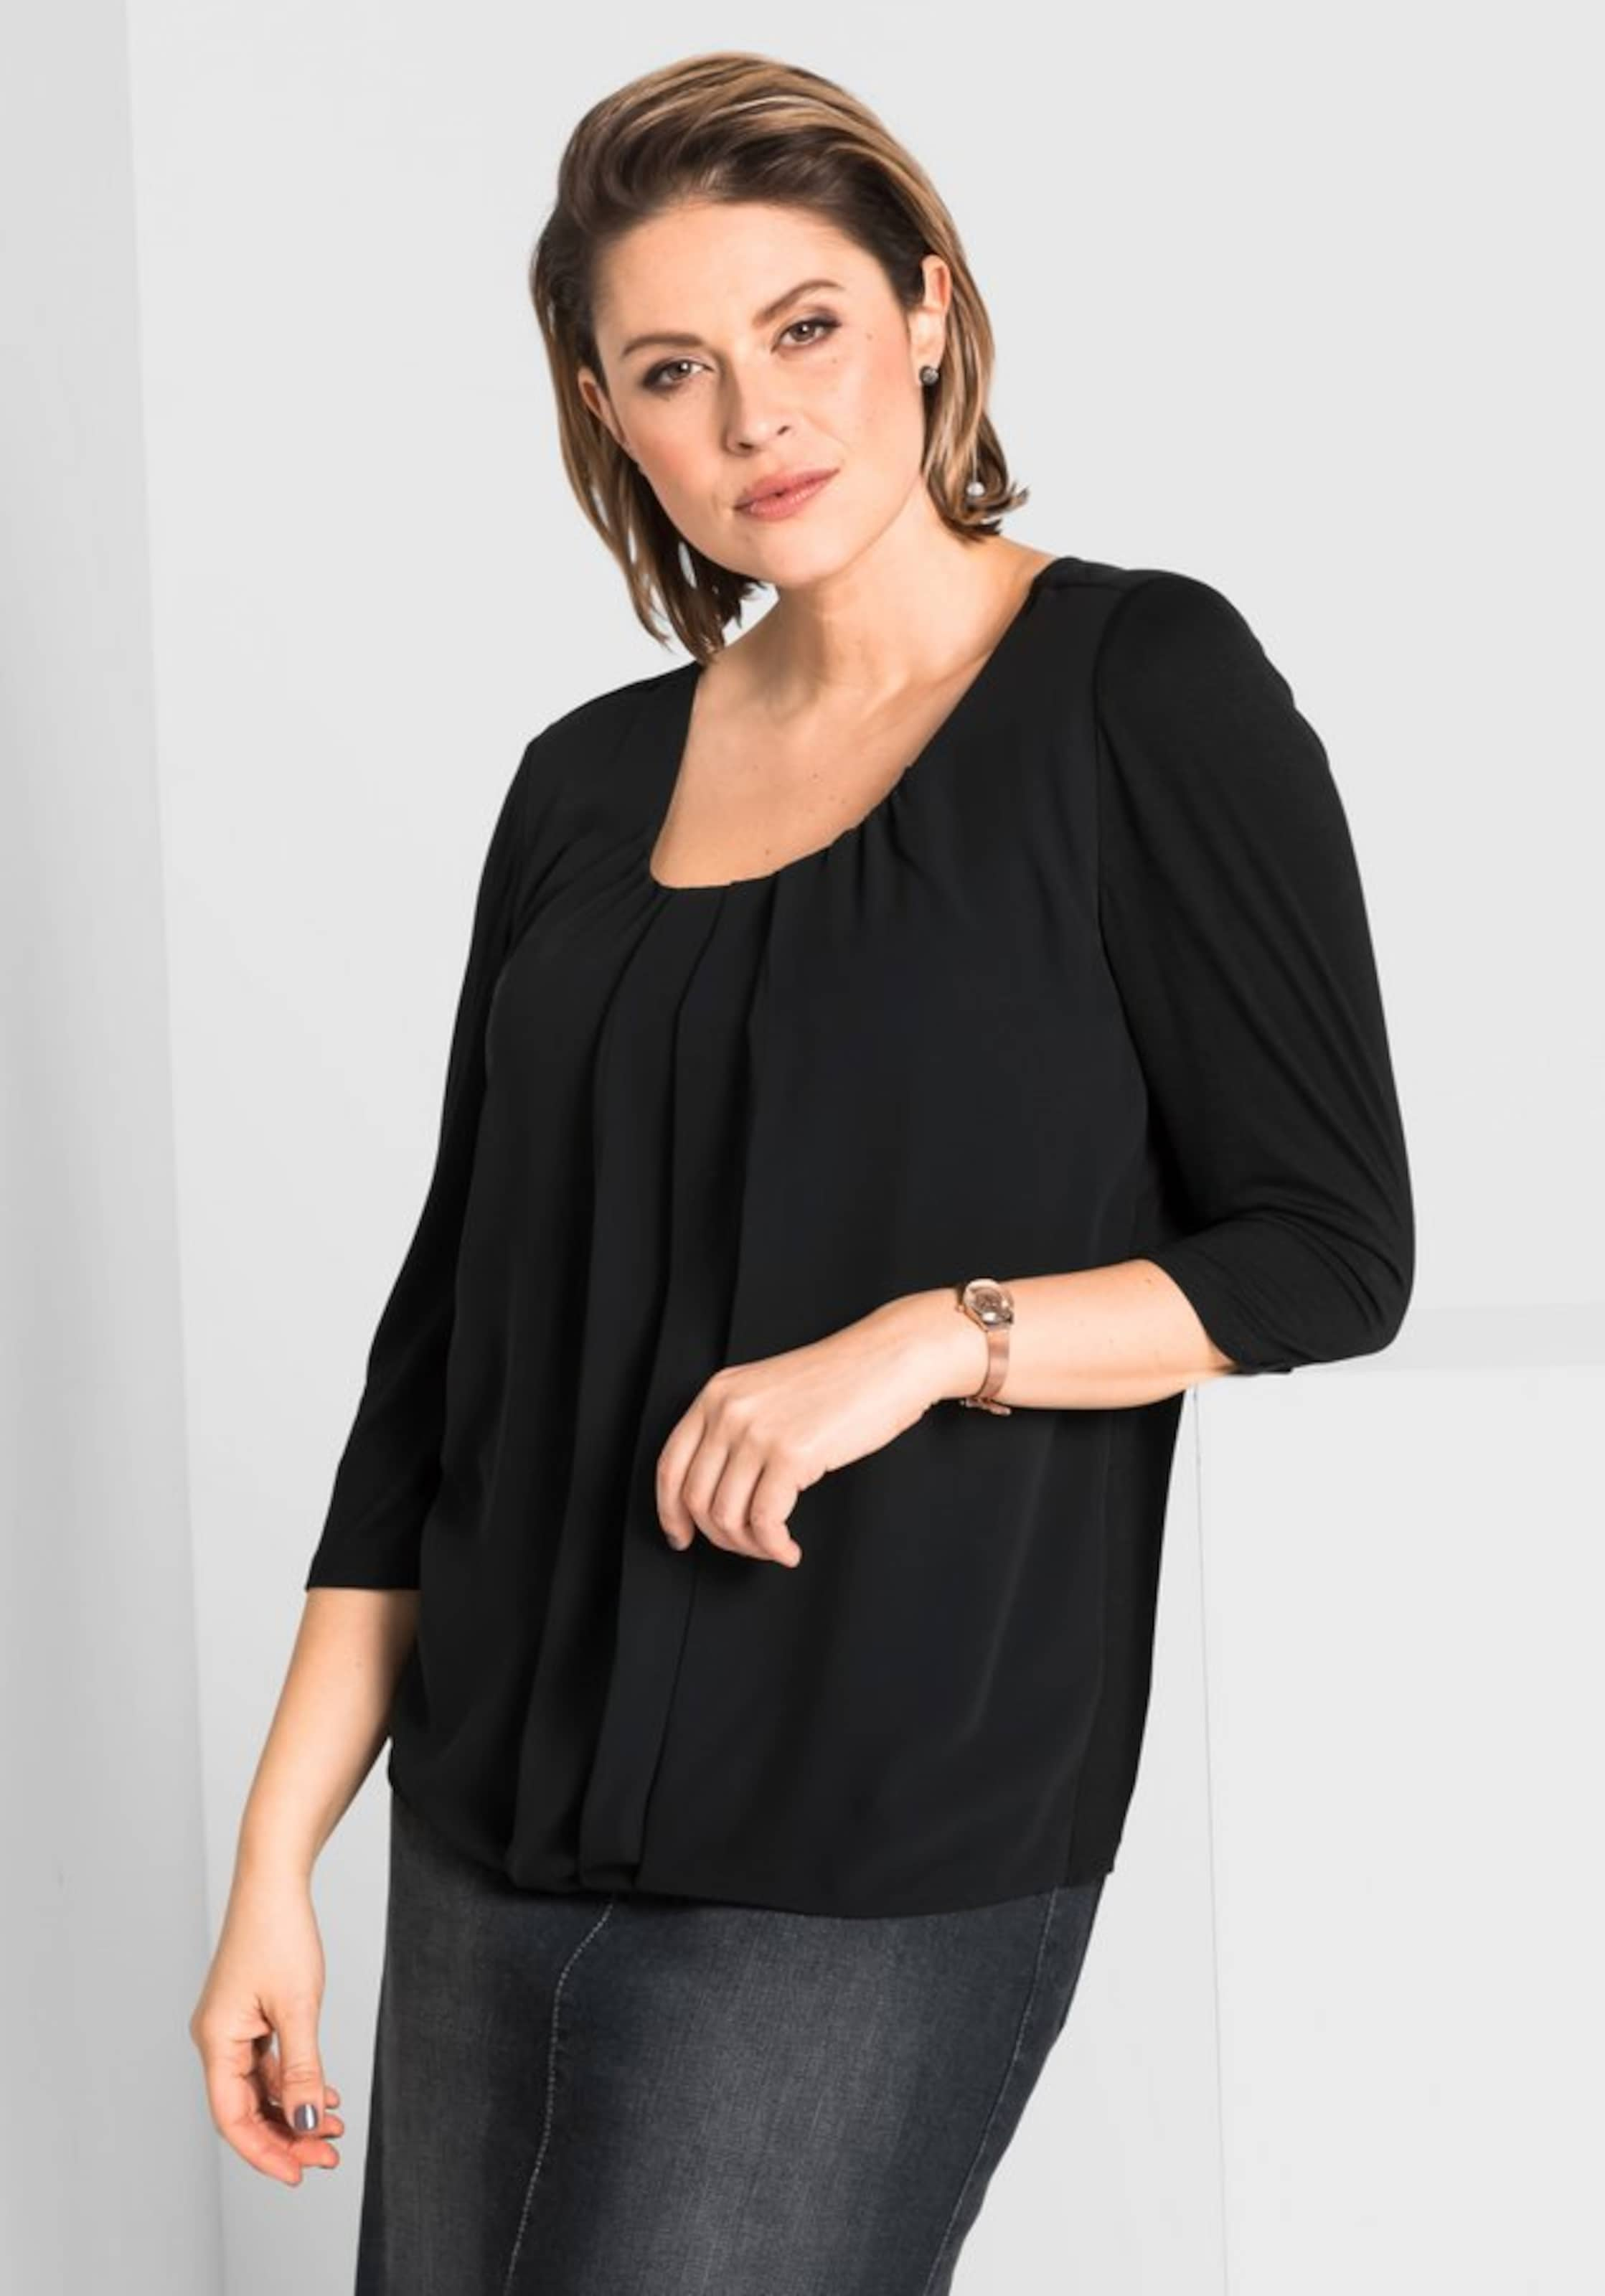 sheego sheego Arm style 3 4 style Shirt v8WnqZ0S